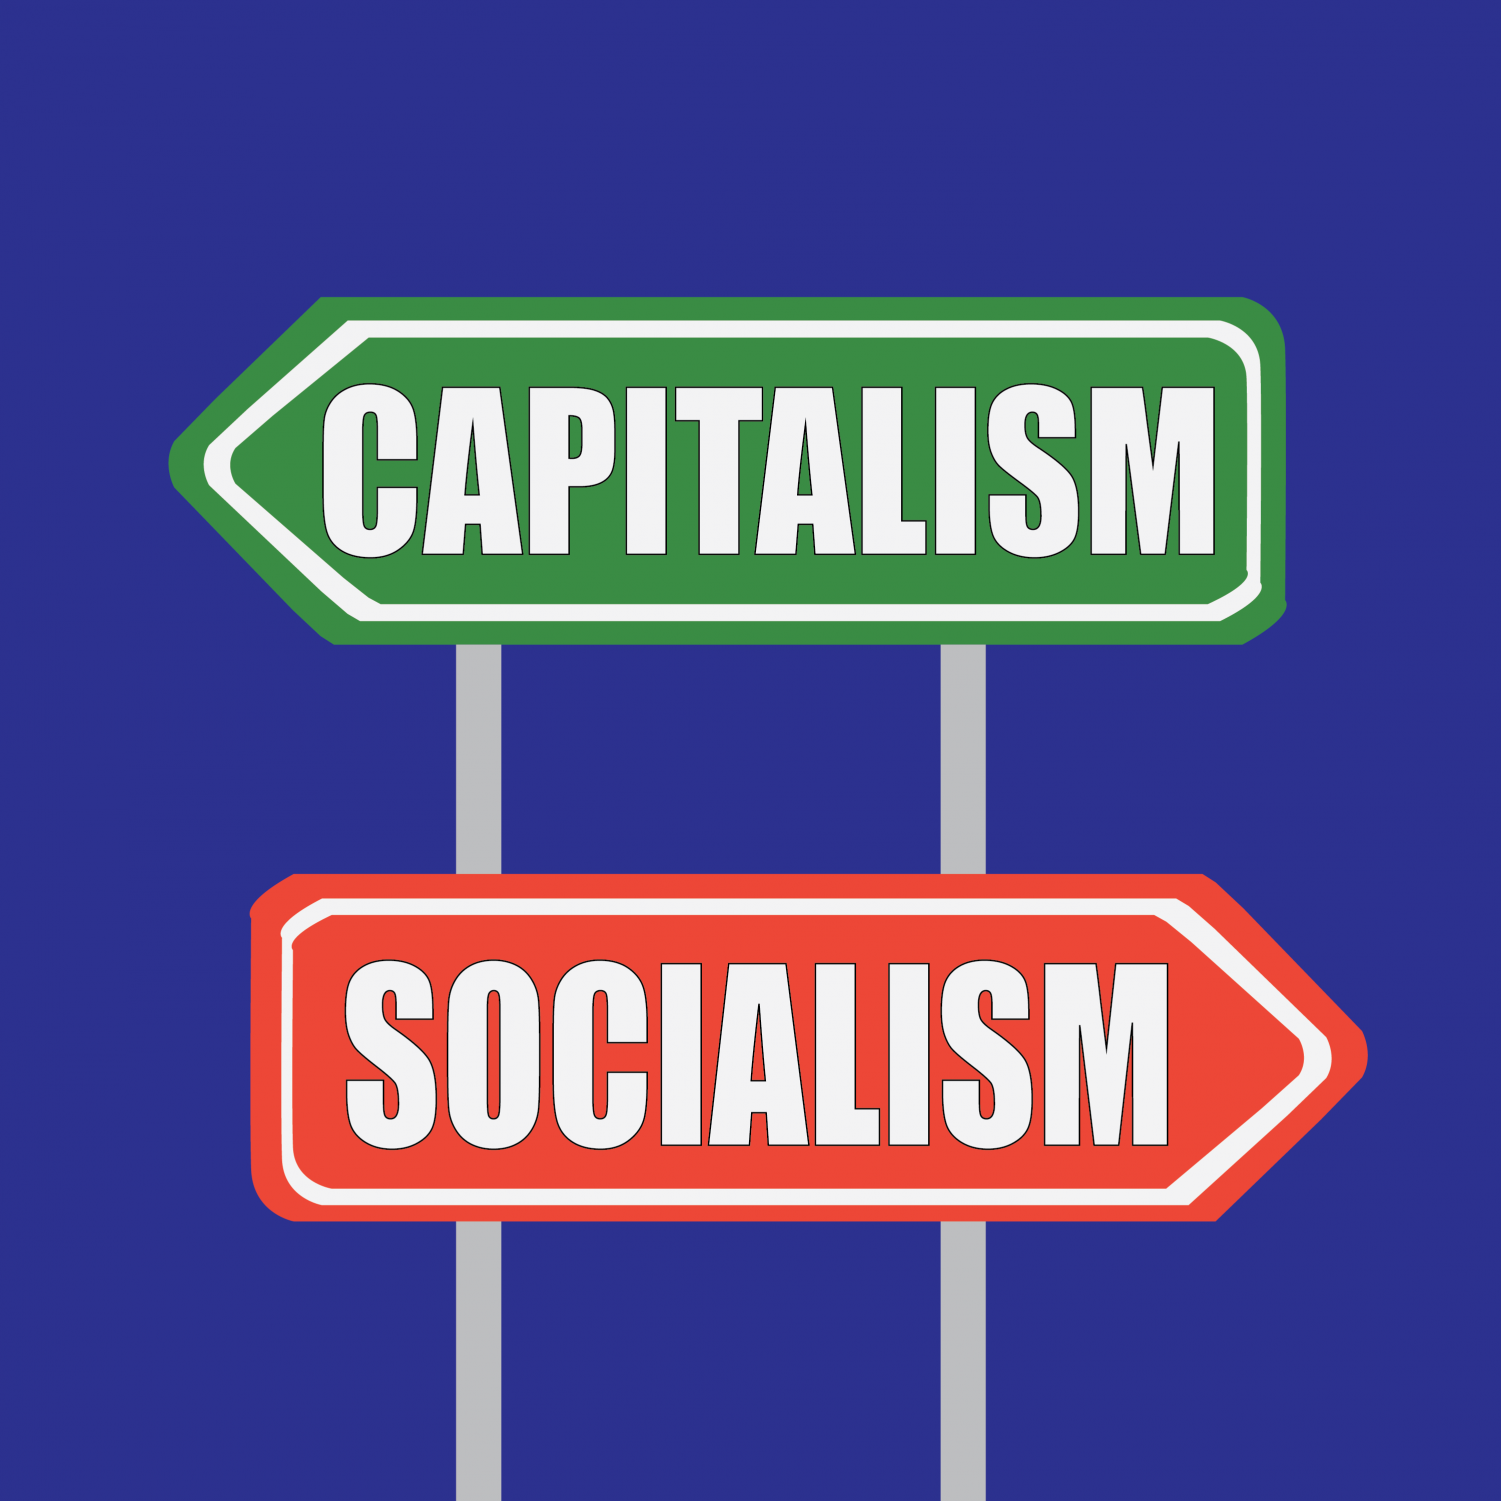 Why the kids don't like capitalism | The Daily Illini